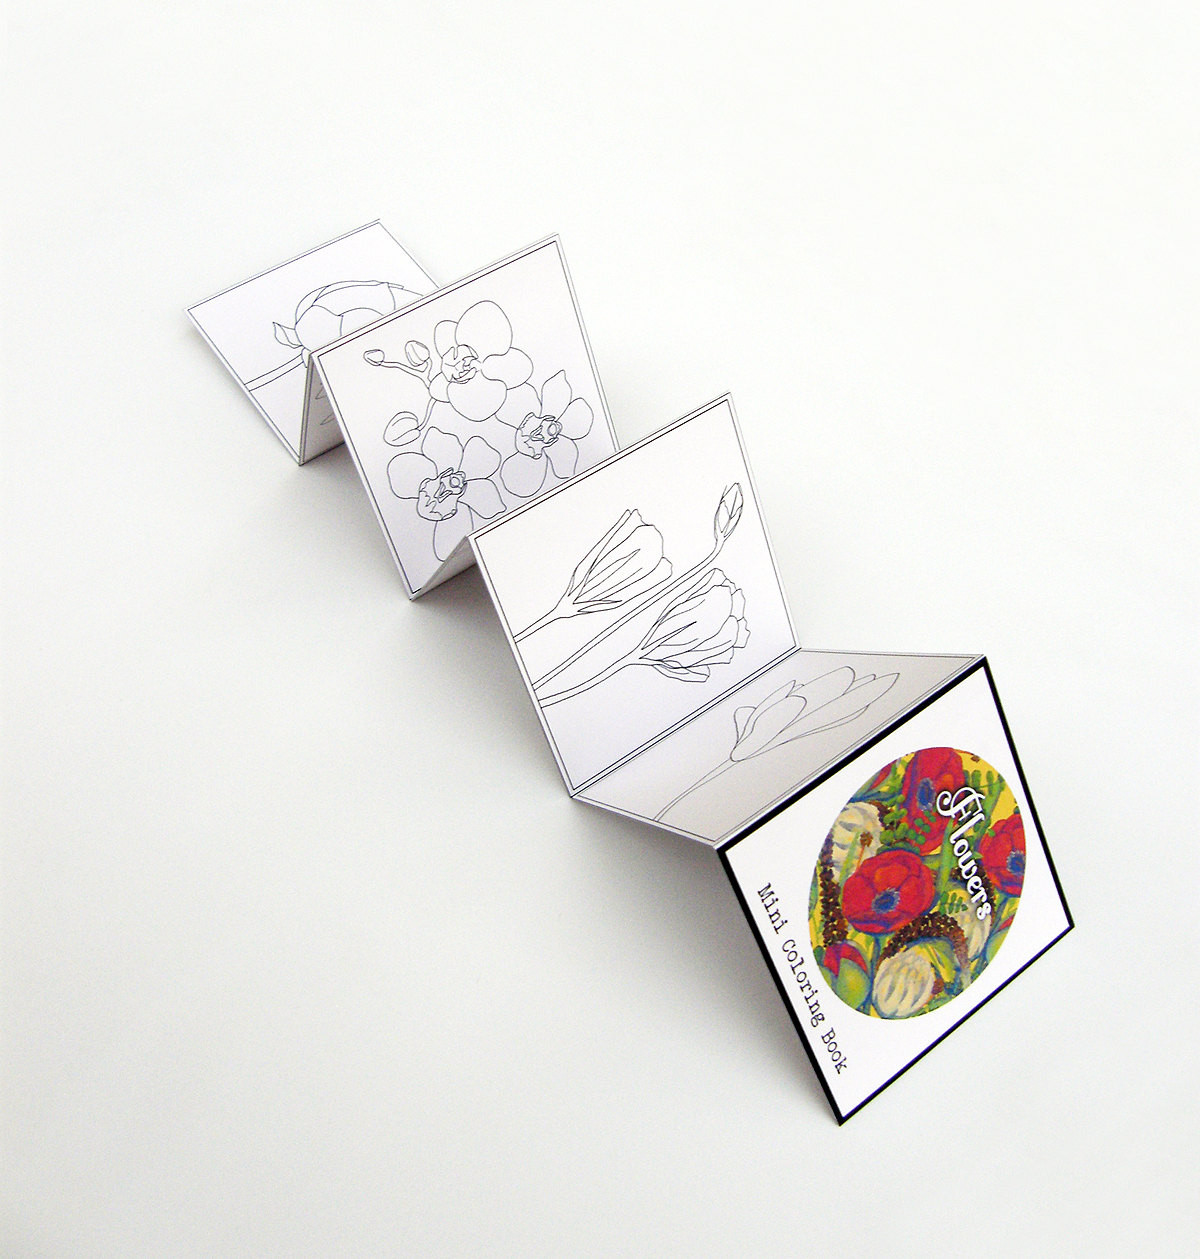 Mini Adult Coloring Book  Mini Adult Coloring Book Flowers Pocket size travel by